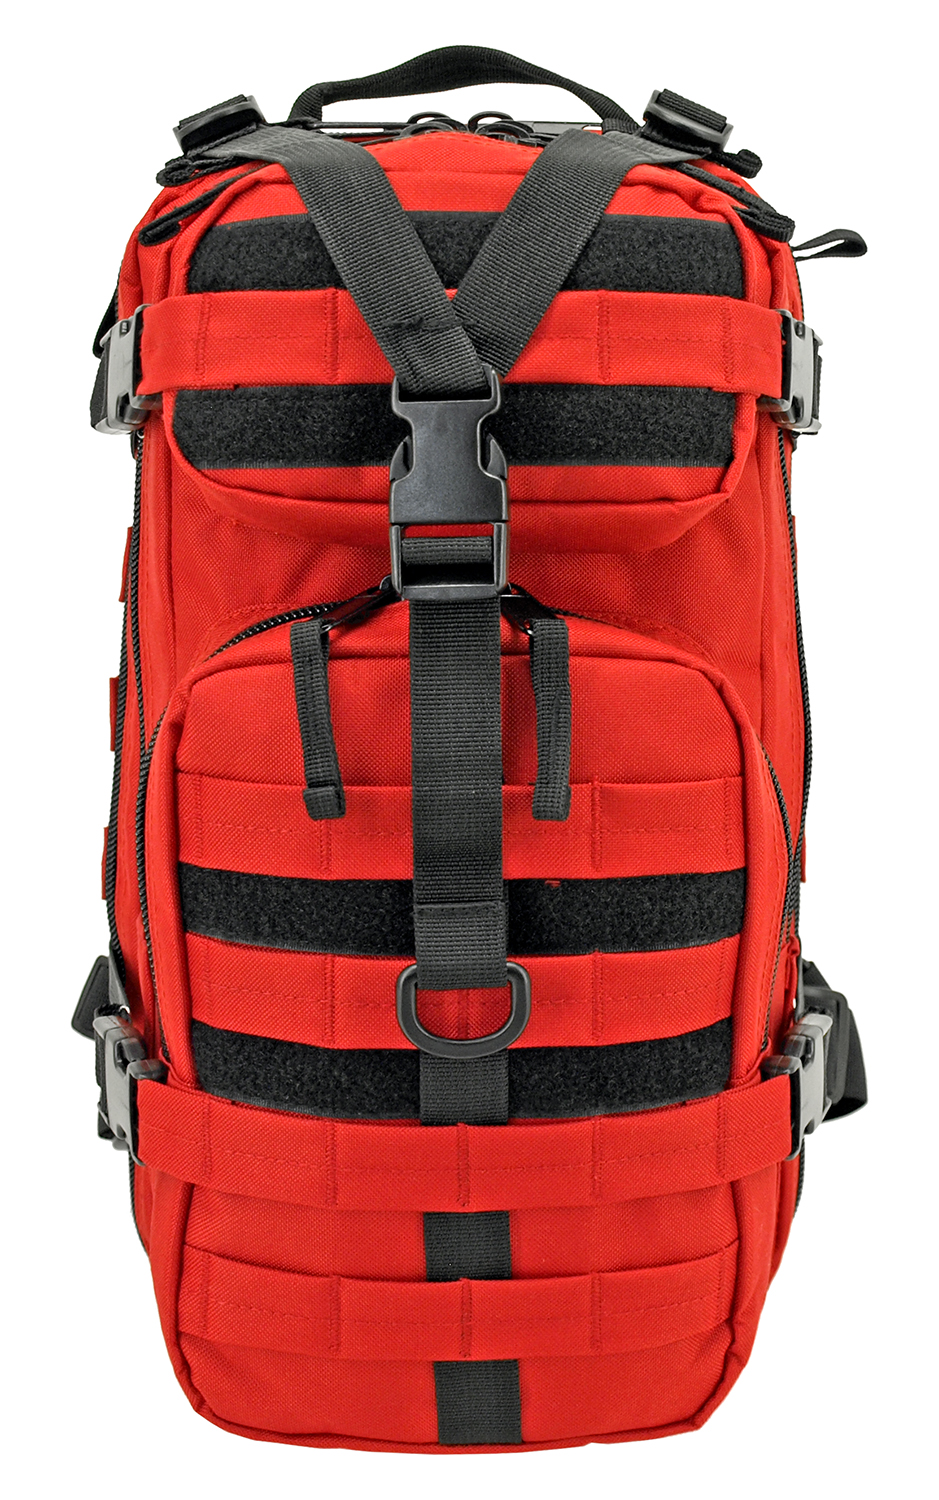 Tactical Assault Backpack - Red